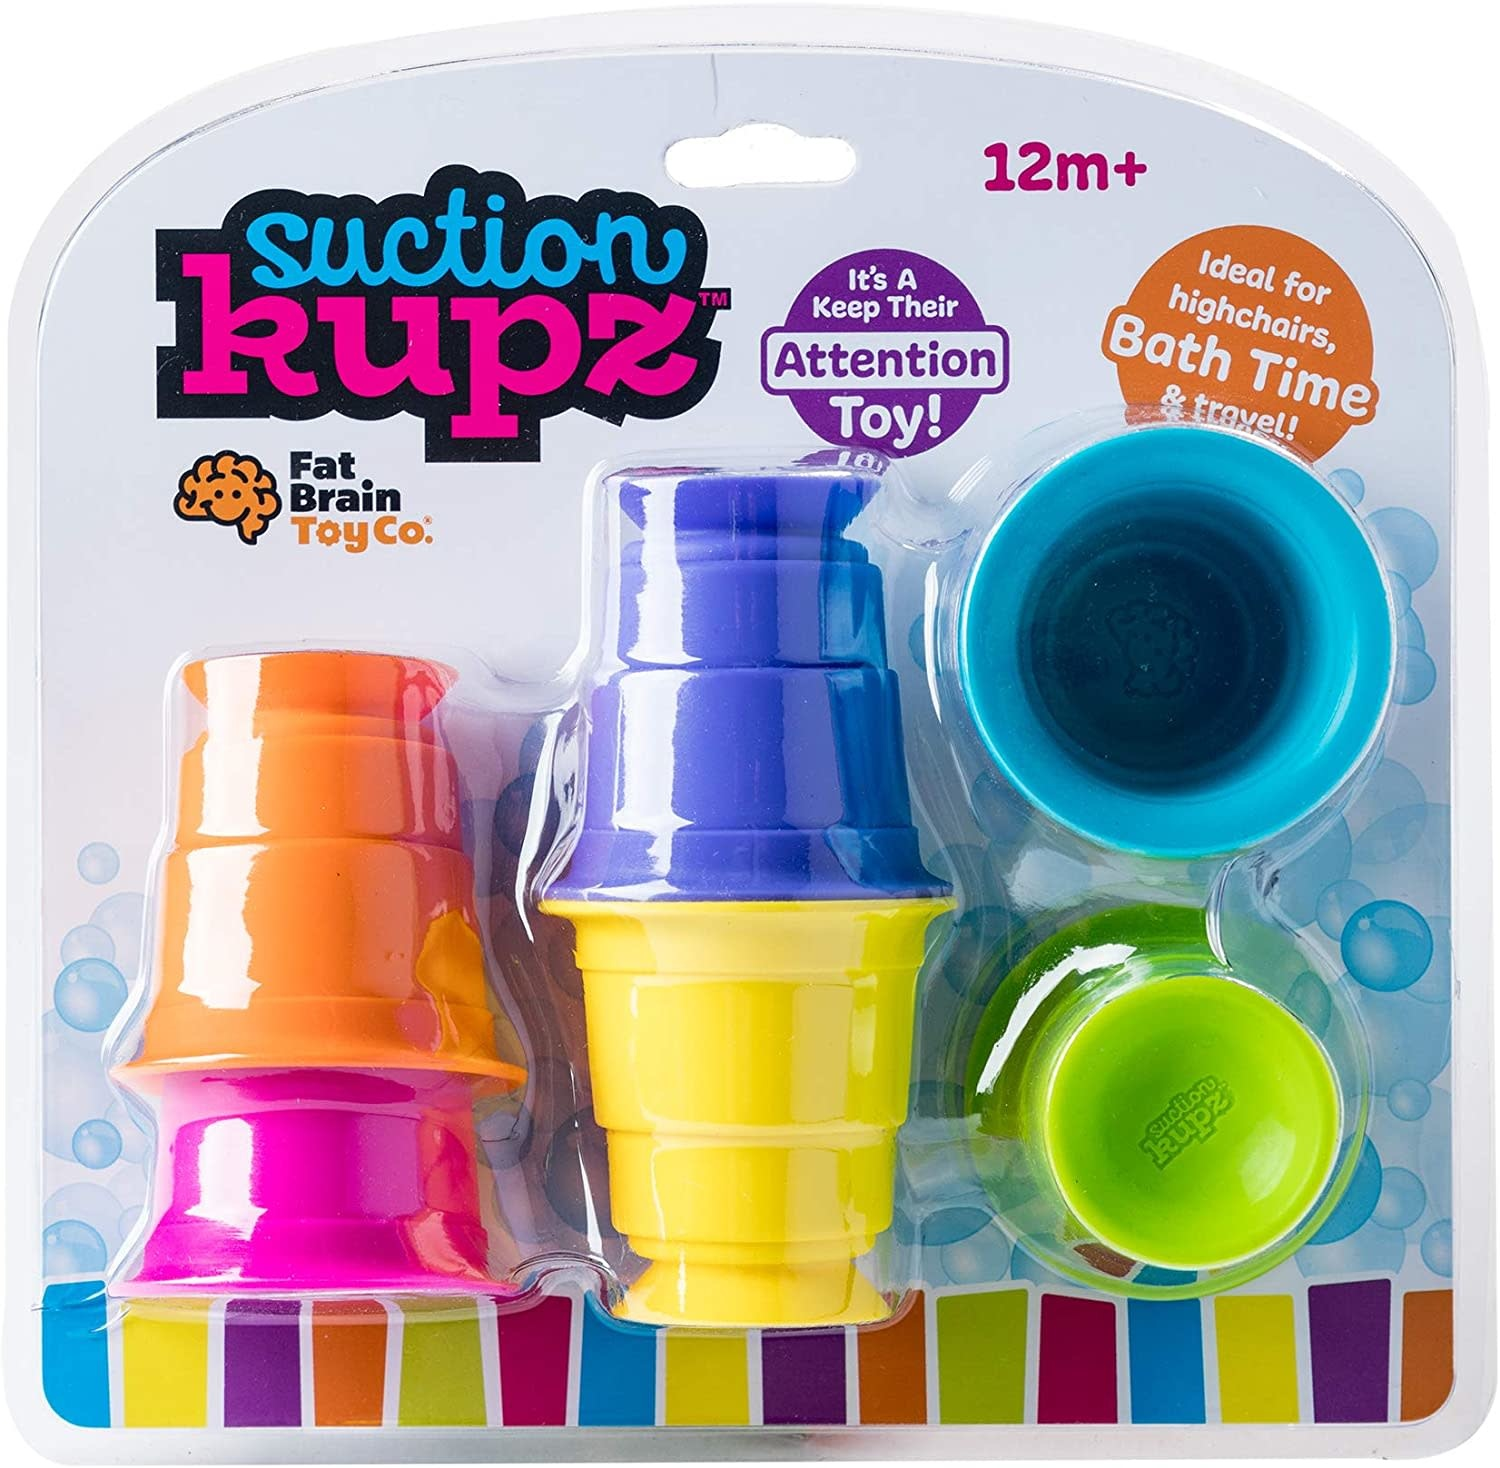 Suction Kupz by Fat Brain Toys